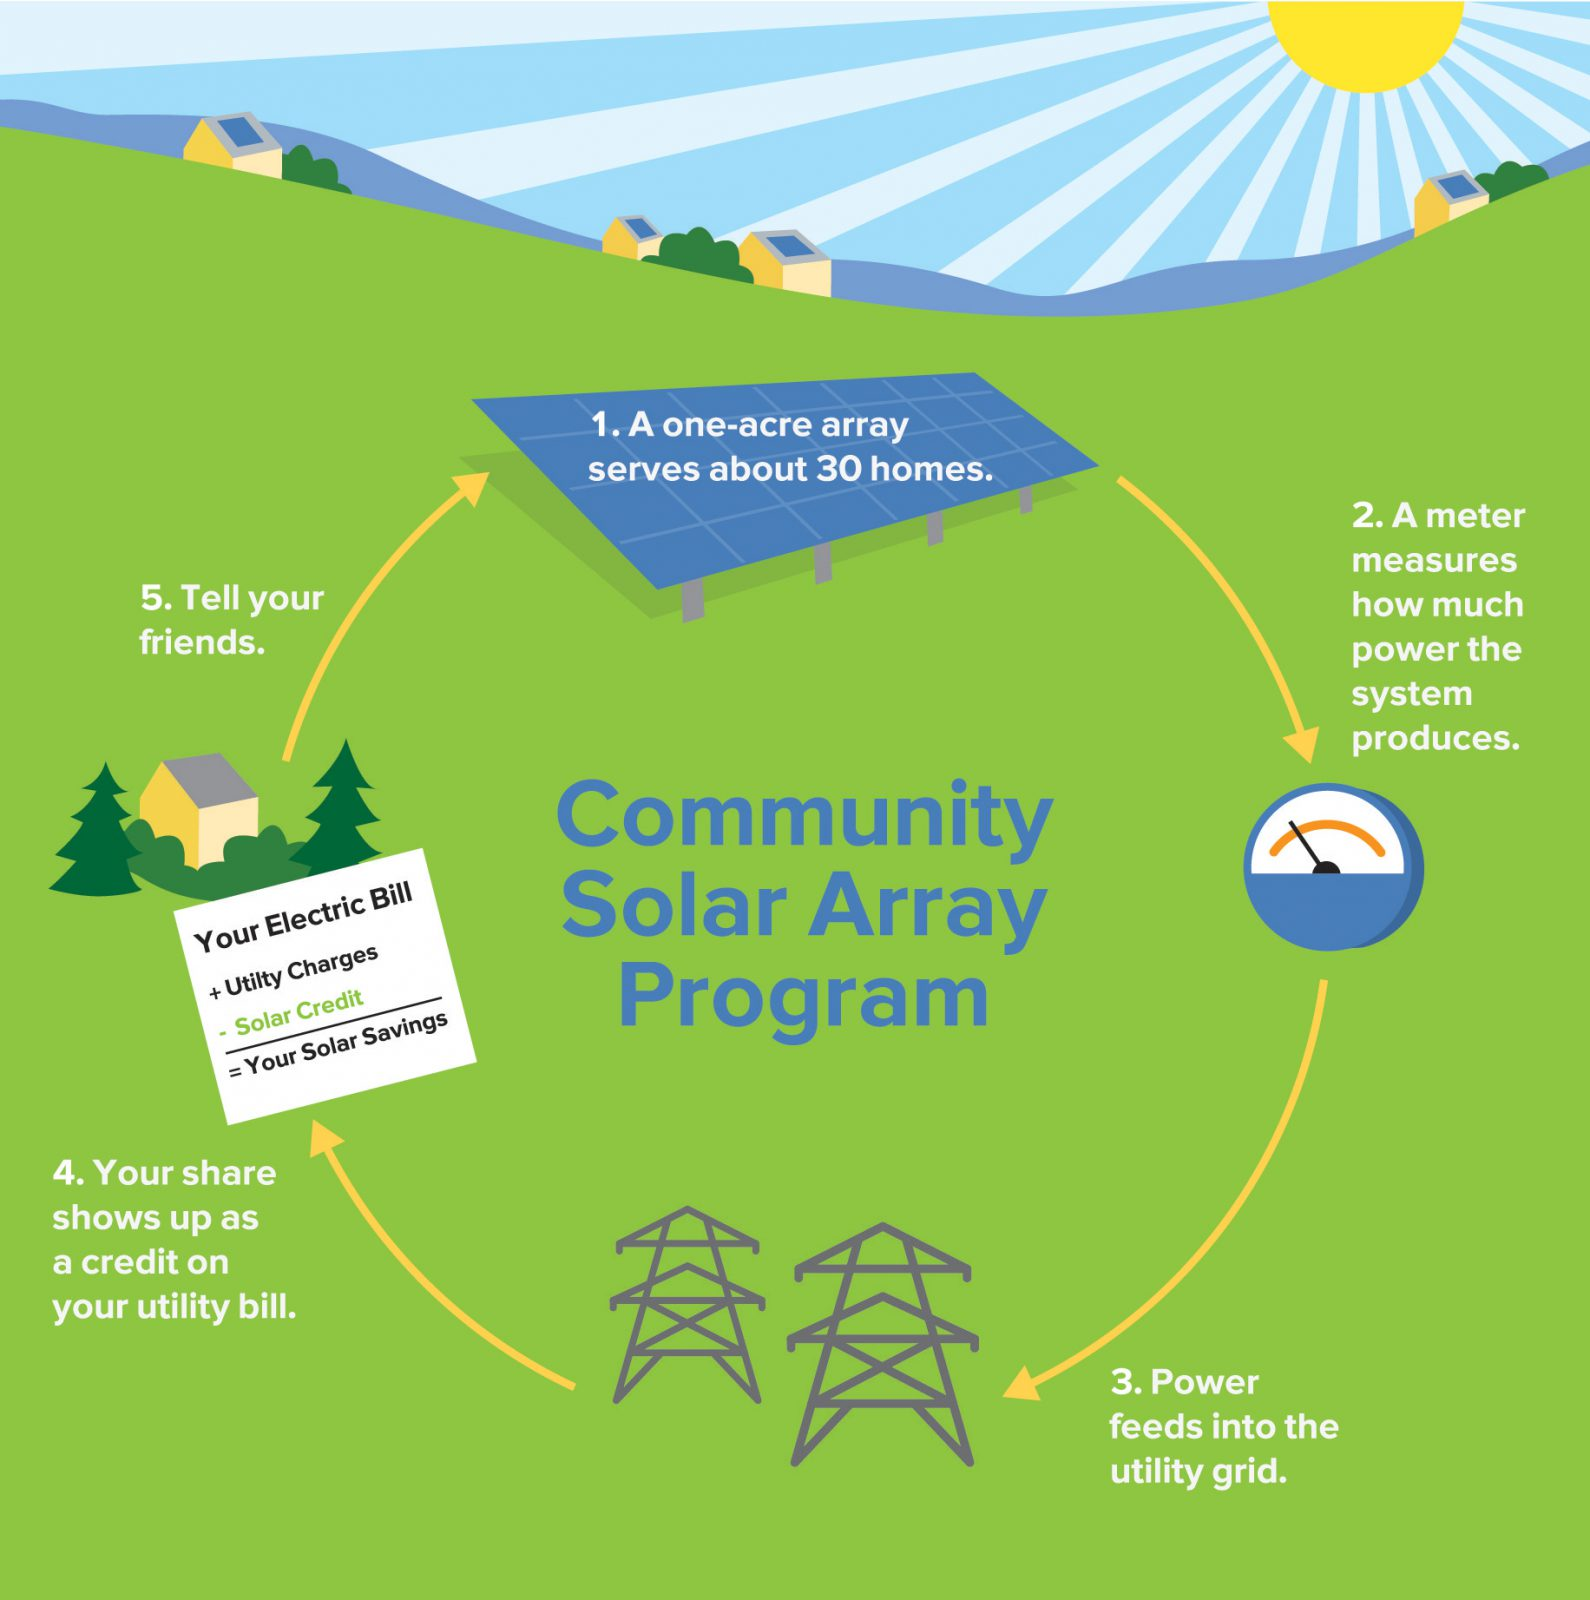 solar energy for the valencian community A guidebook for community solar programs in michigan communities solar energy is a proven technology that harnesses energy from the sun to create electricity.